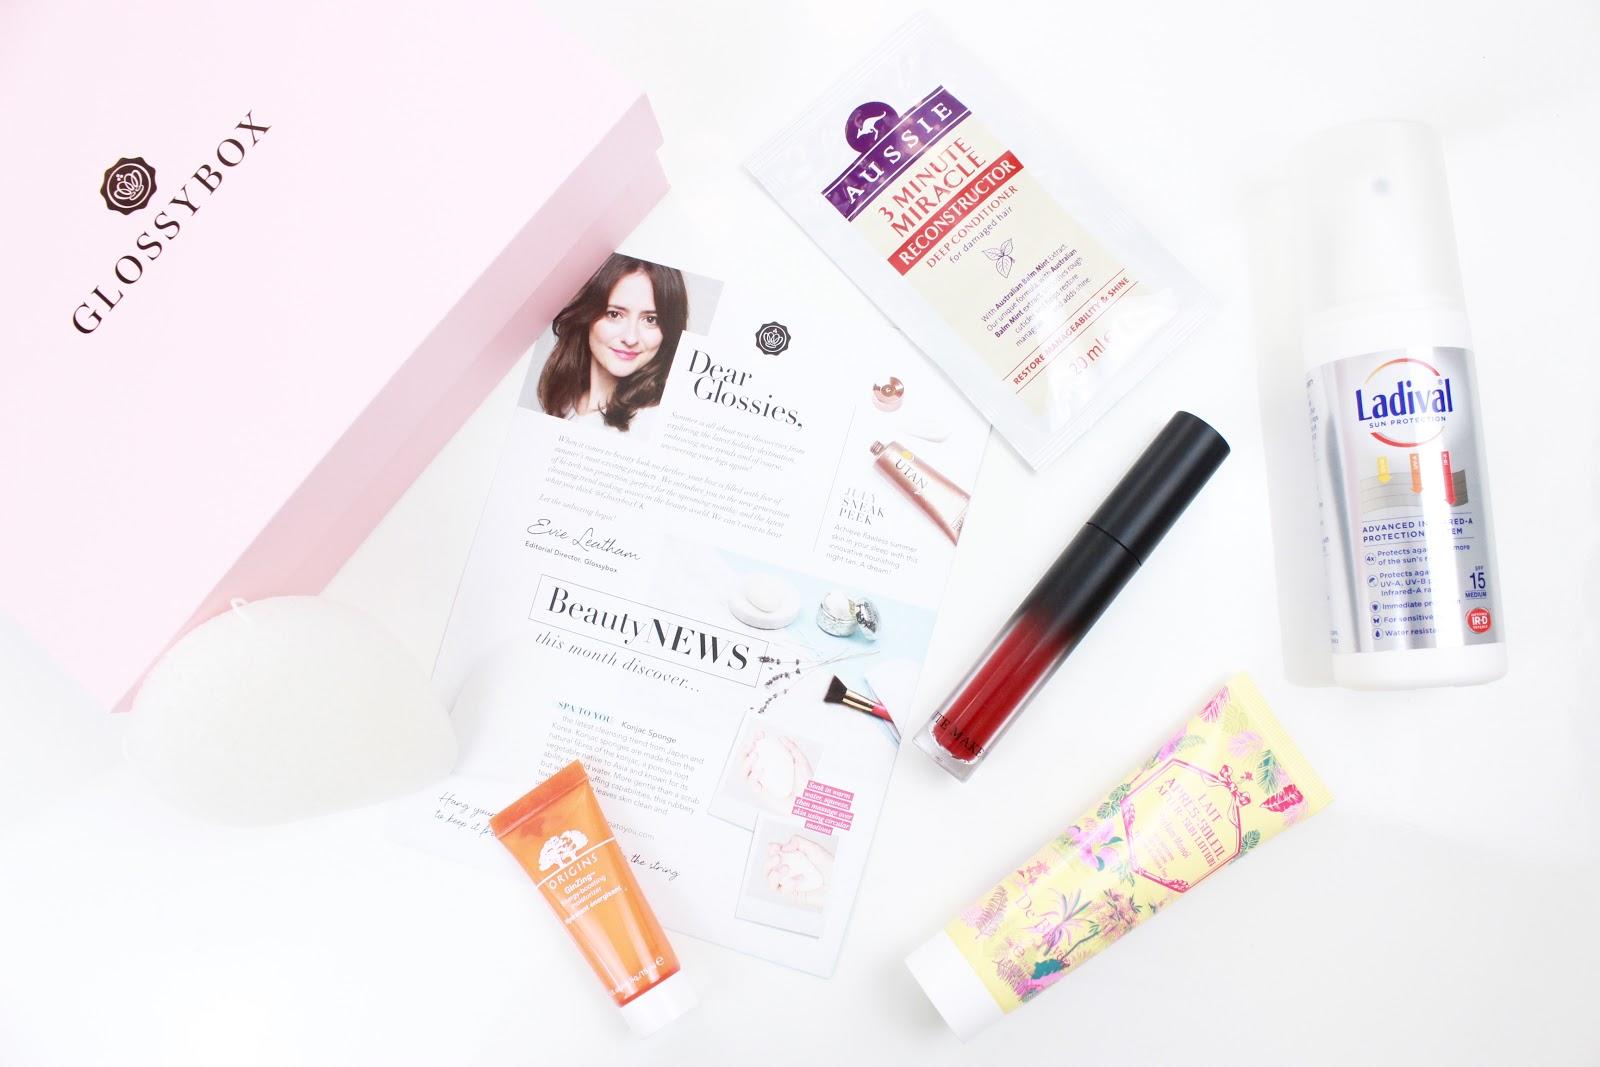 Glossy box June 2016